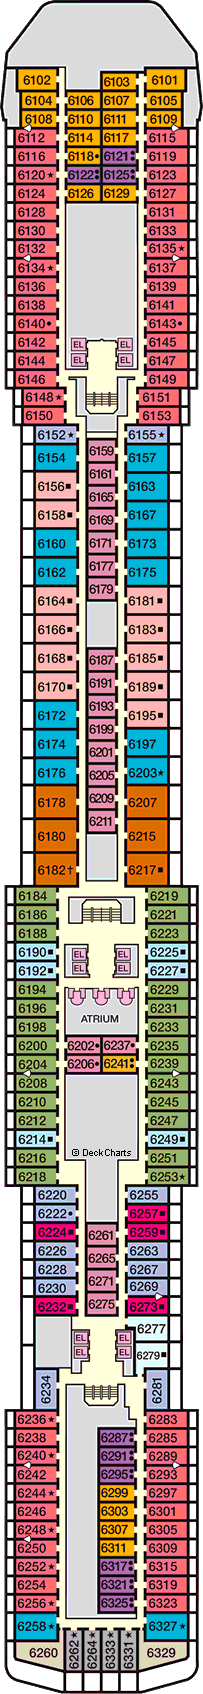 Carnival Spirit Cruise Ship Deck Plans on Cruise Critic : 7e3fc7d4b20f9a37014b4dd3b02ea044 from www.cruisecritic.com size 203 x 1694 png 58kB